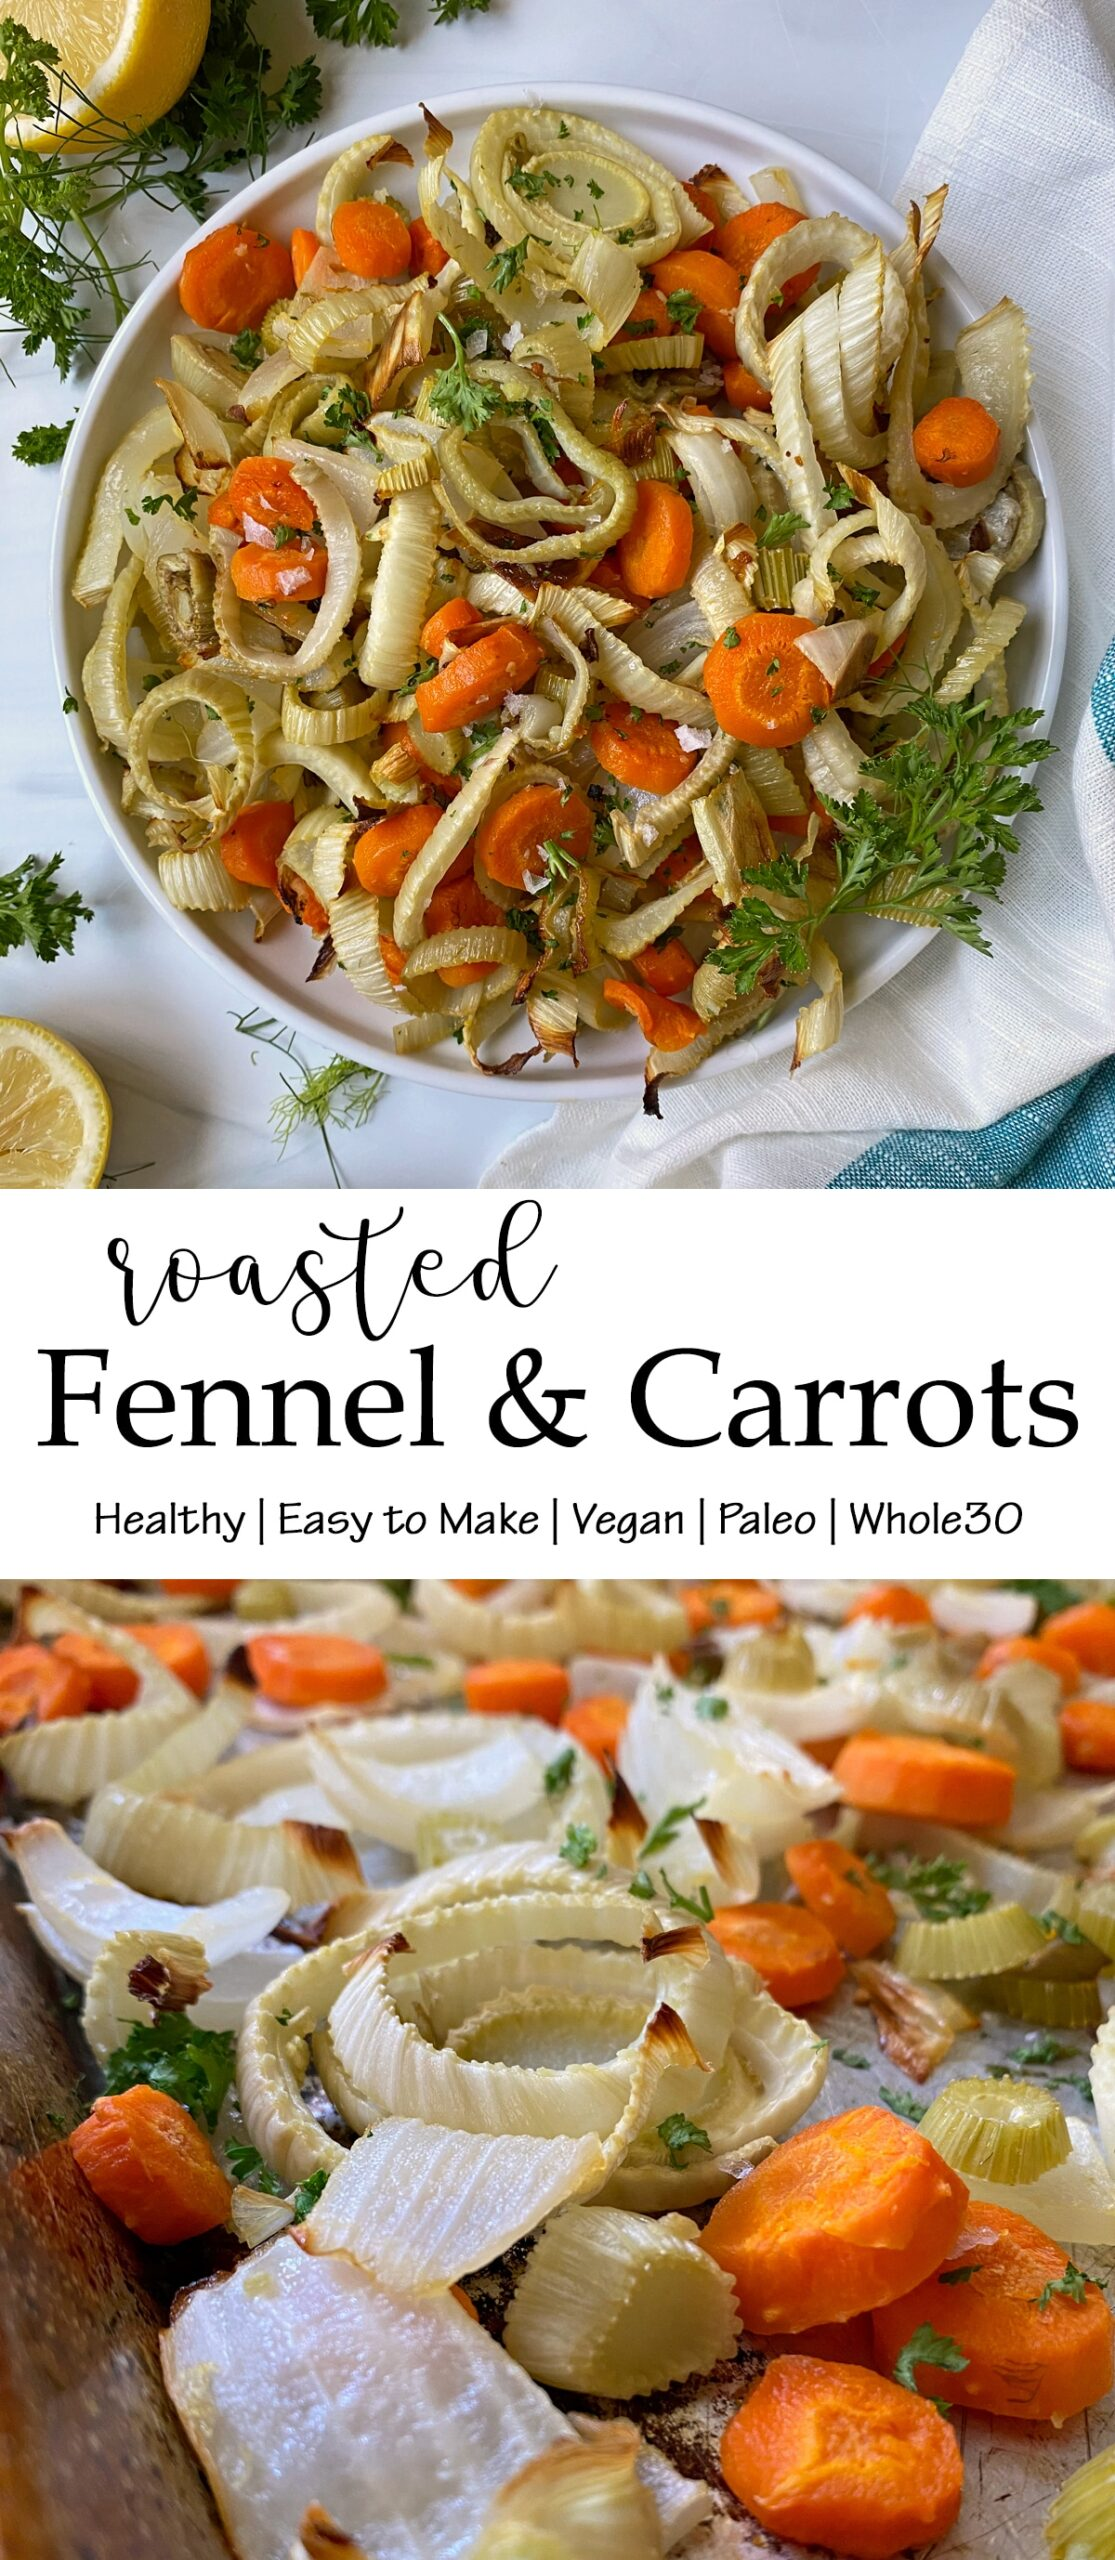 healthy roasted fennel and carrots recipe